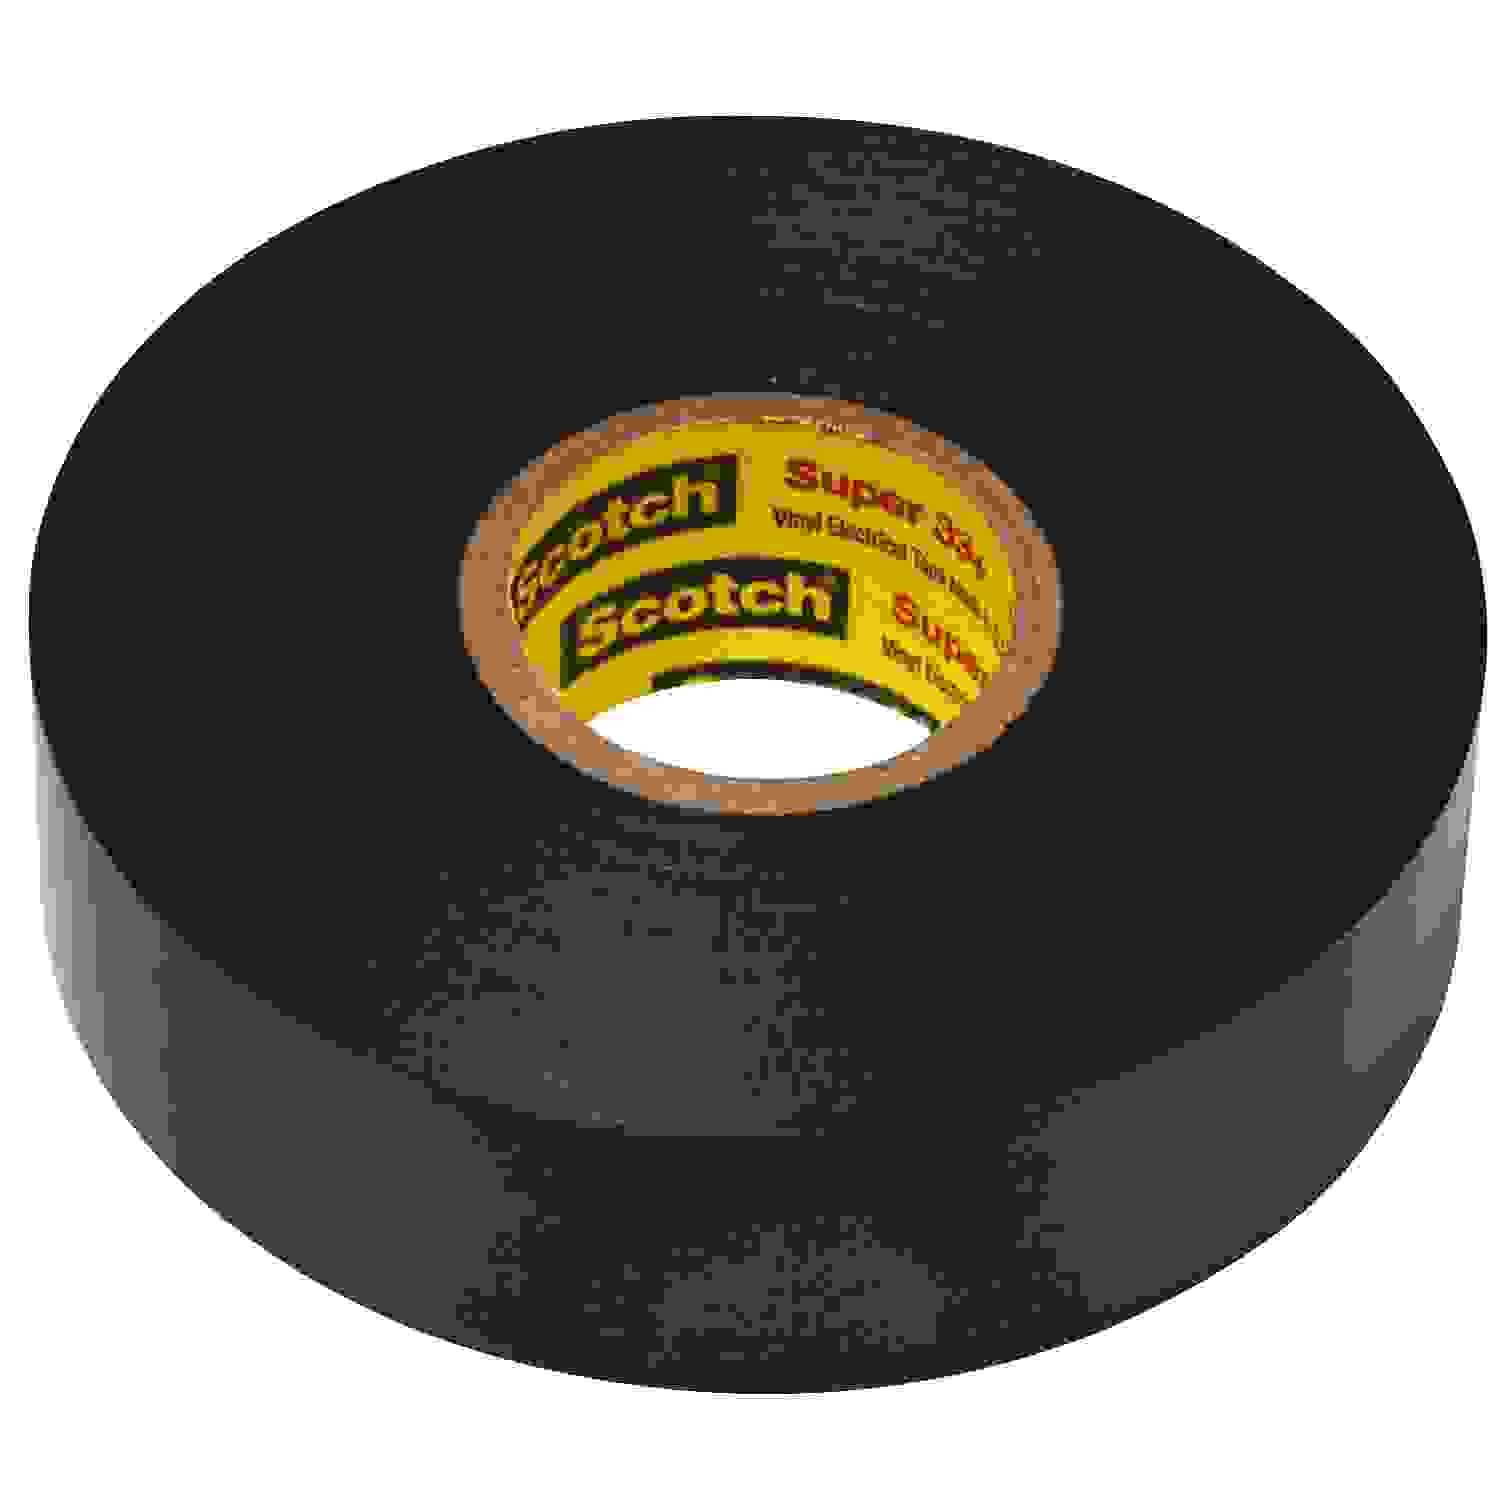 Electrical Supply - Industrial Supply - Distributor ... on wheel tape, washi tape, muffler tape, hose tape, wire loom clips, tail light tape,